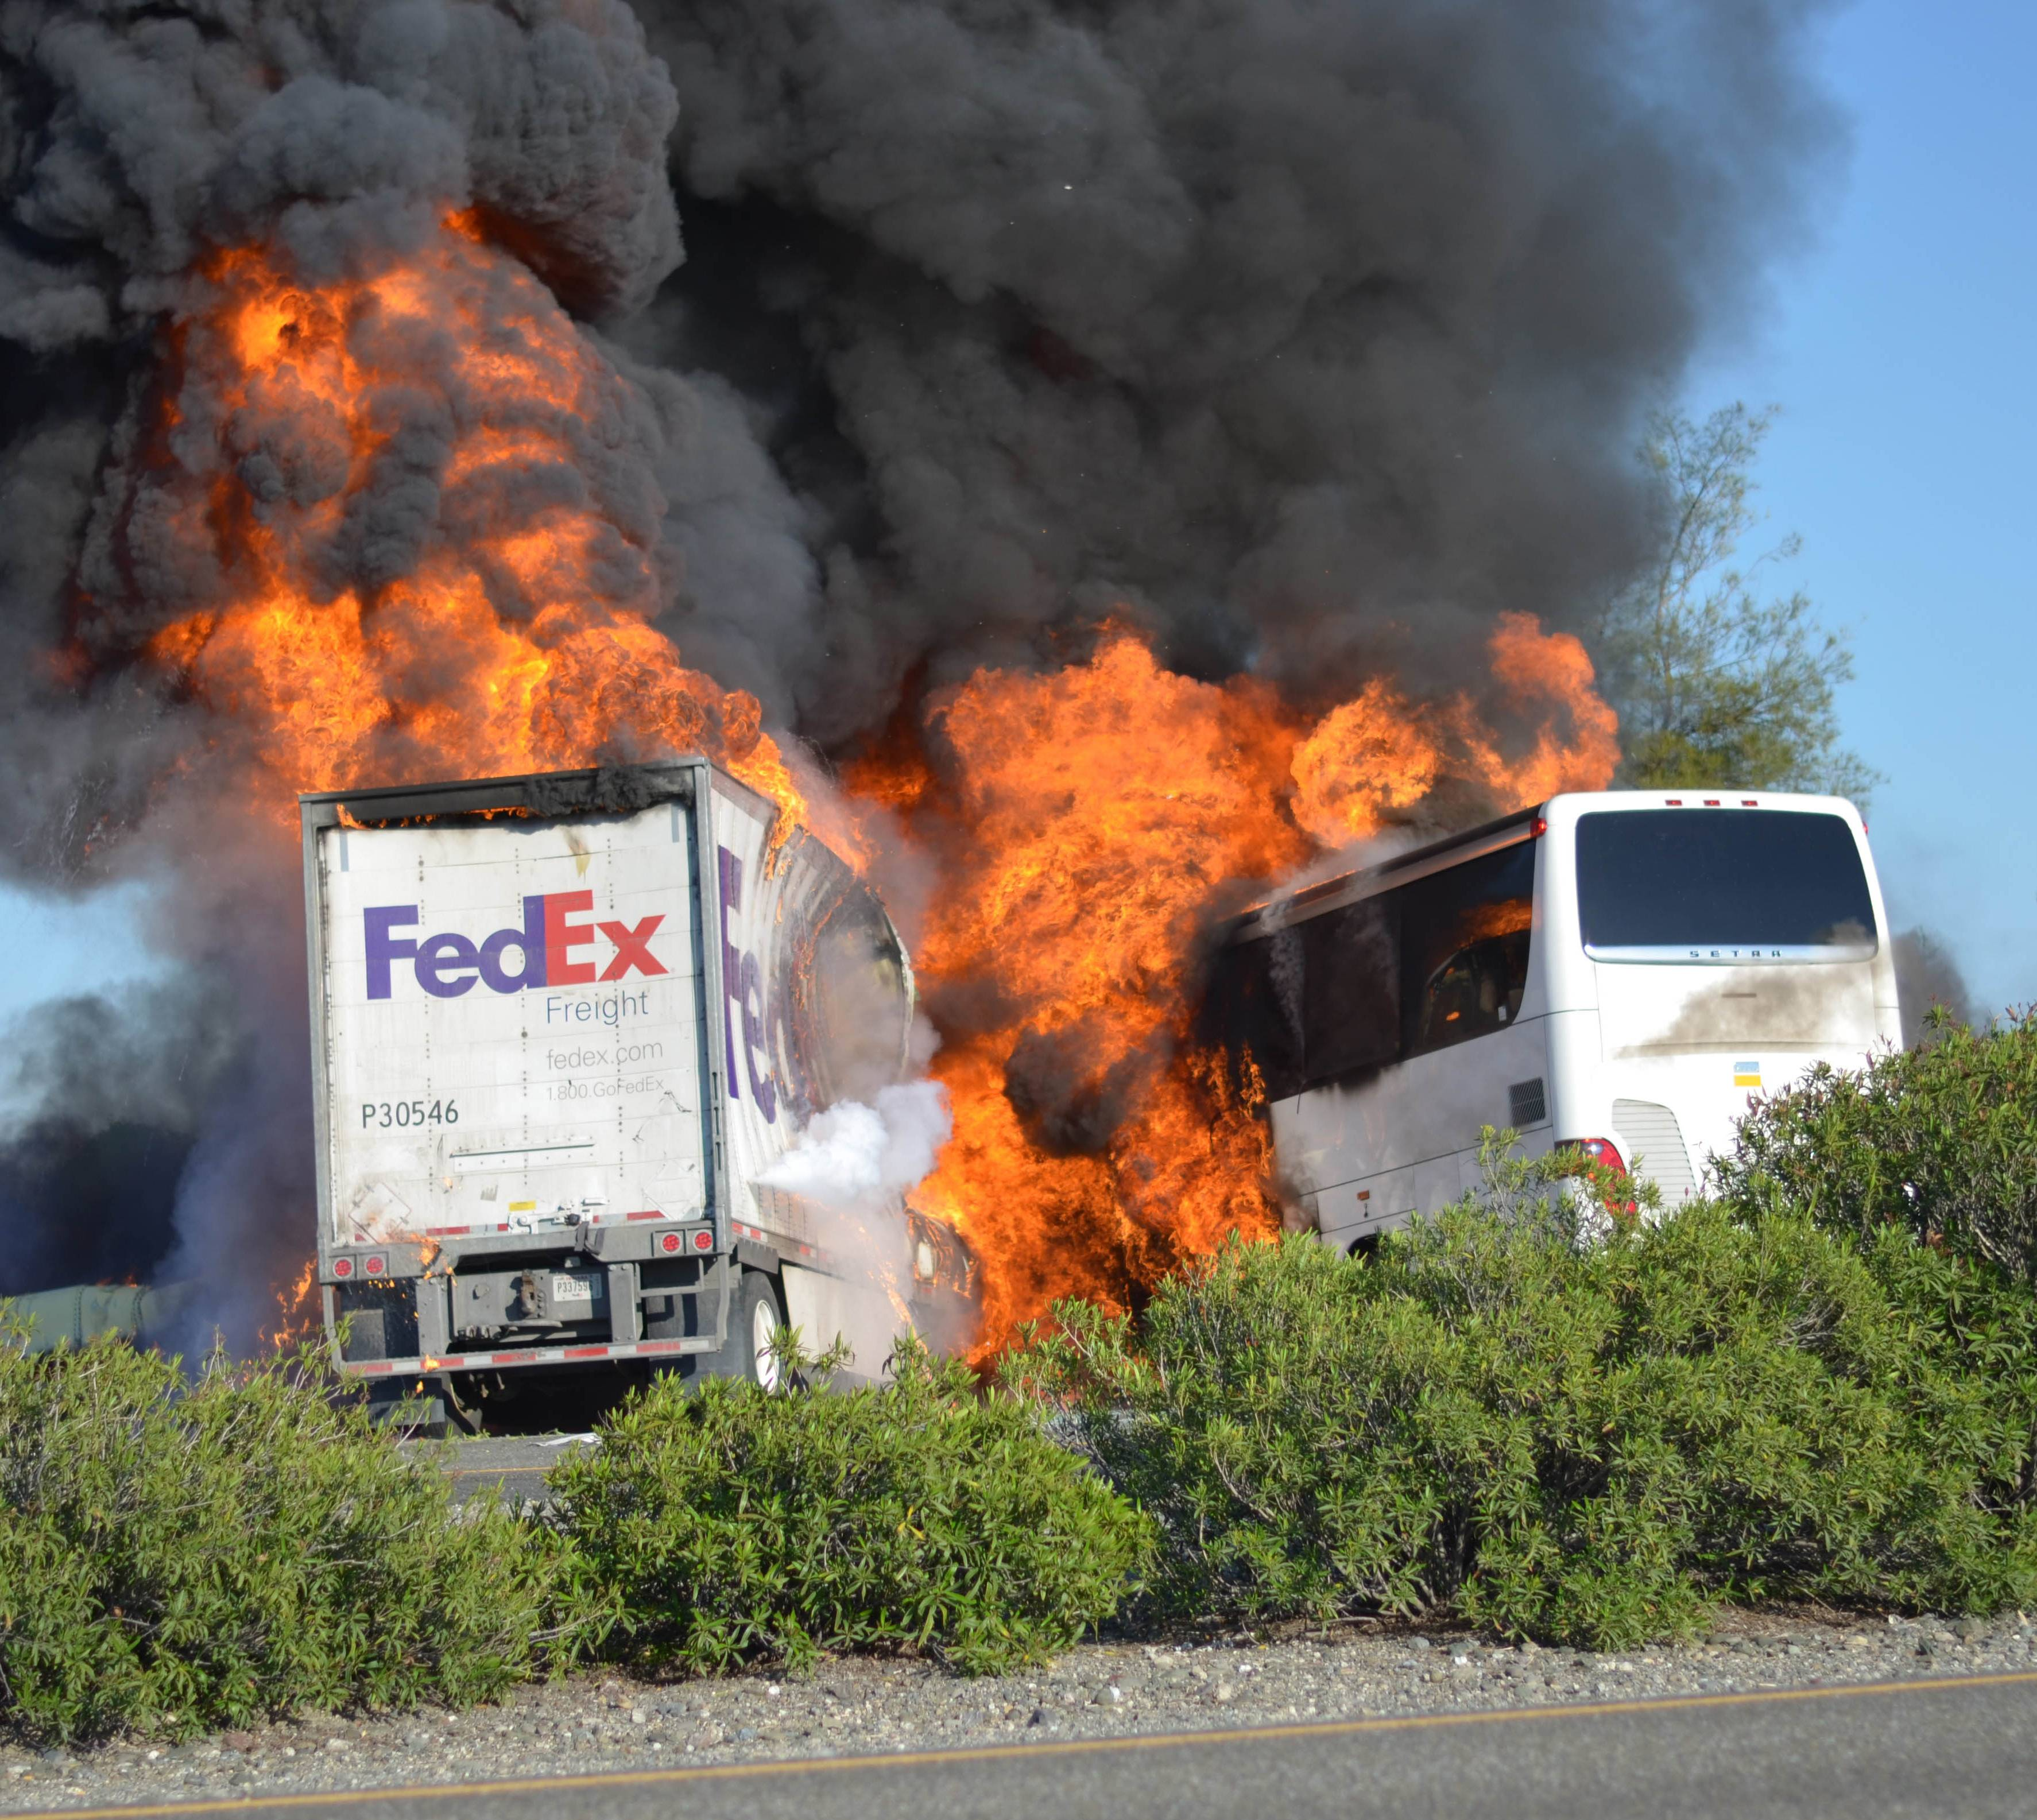 Massive flames engulf a tractor-trailer and a tour bus just after they collide on Interstate 5, Thursday April, 10, 2014, near Orland, Calif. At least 10 people were killed in the crash, authorities said.